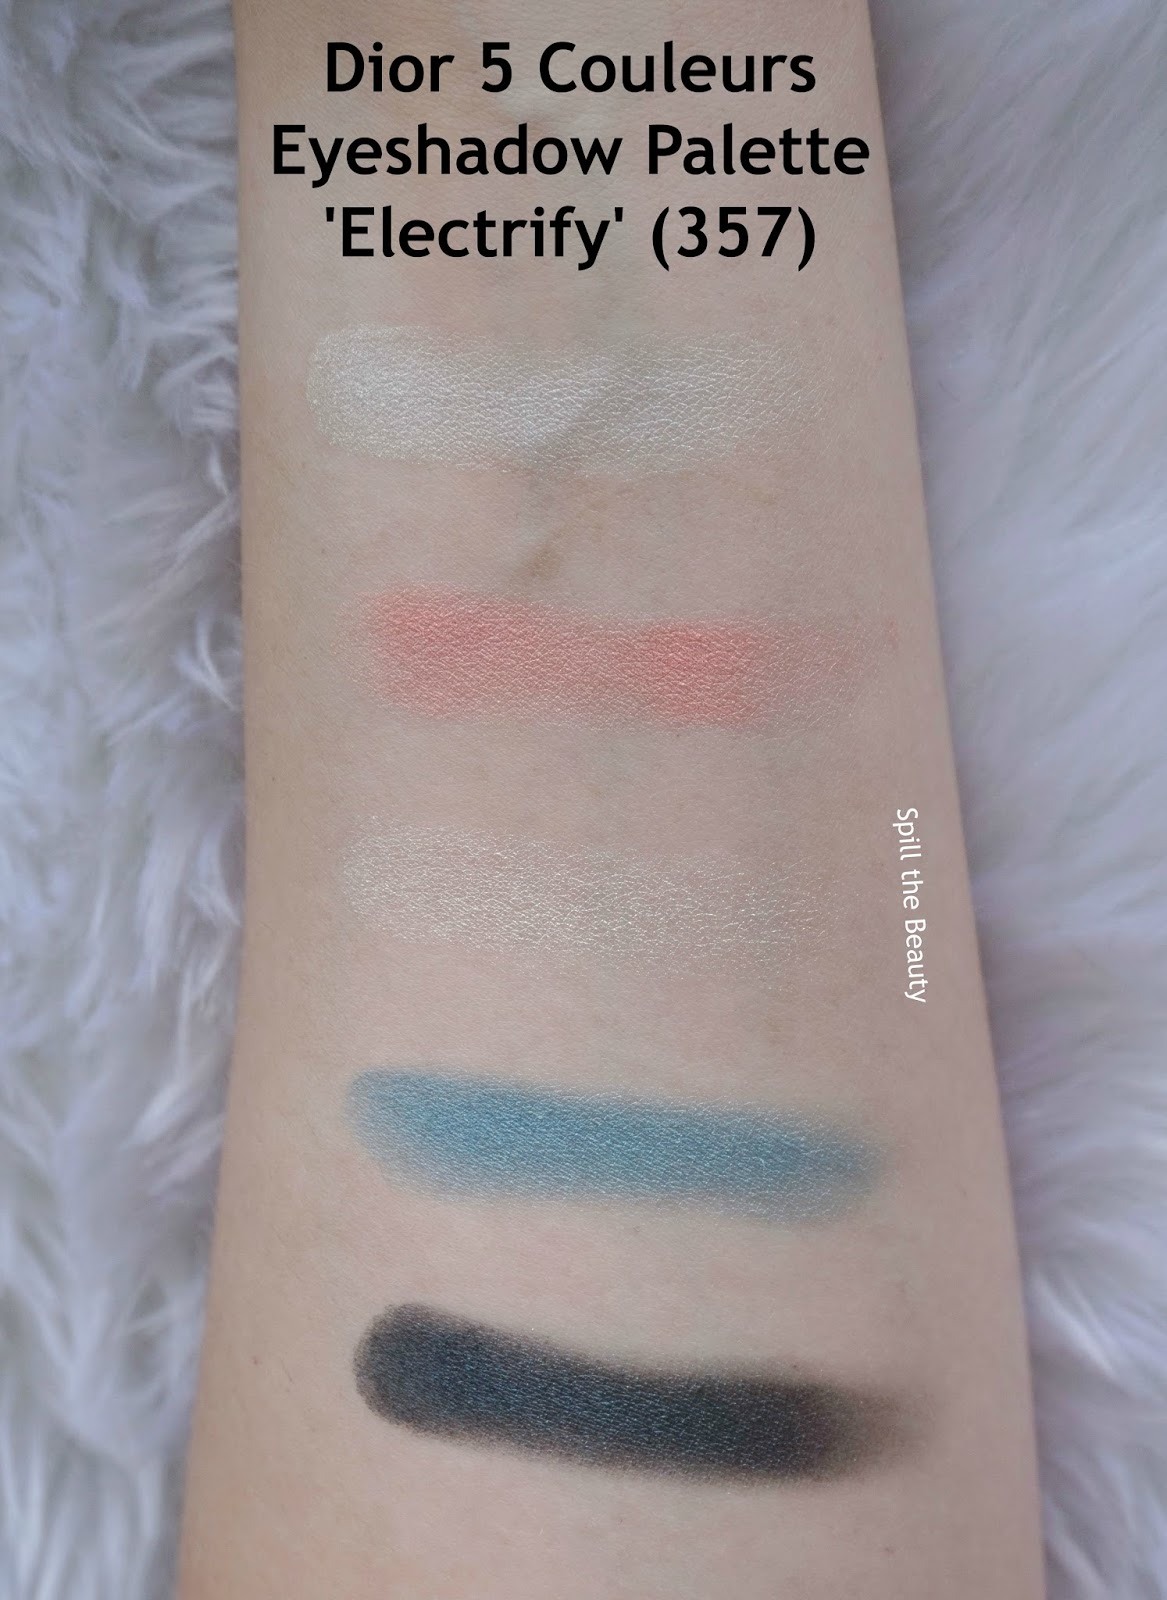 dior 5 couleurs eyeshadow palette electrify 357 review swatches look